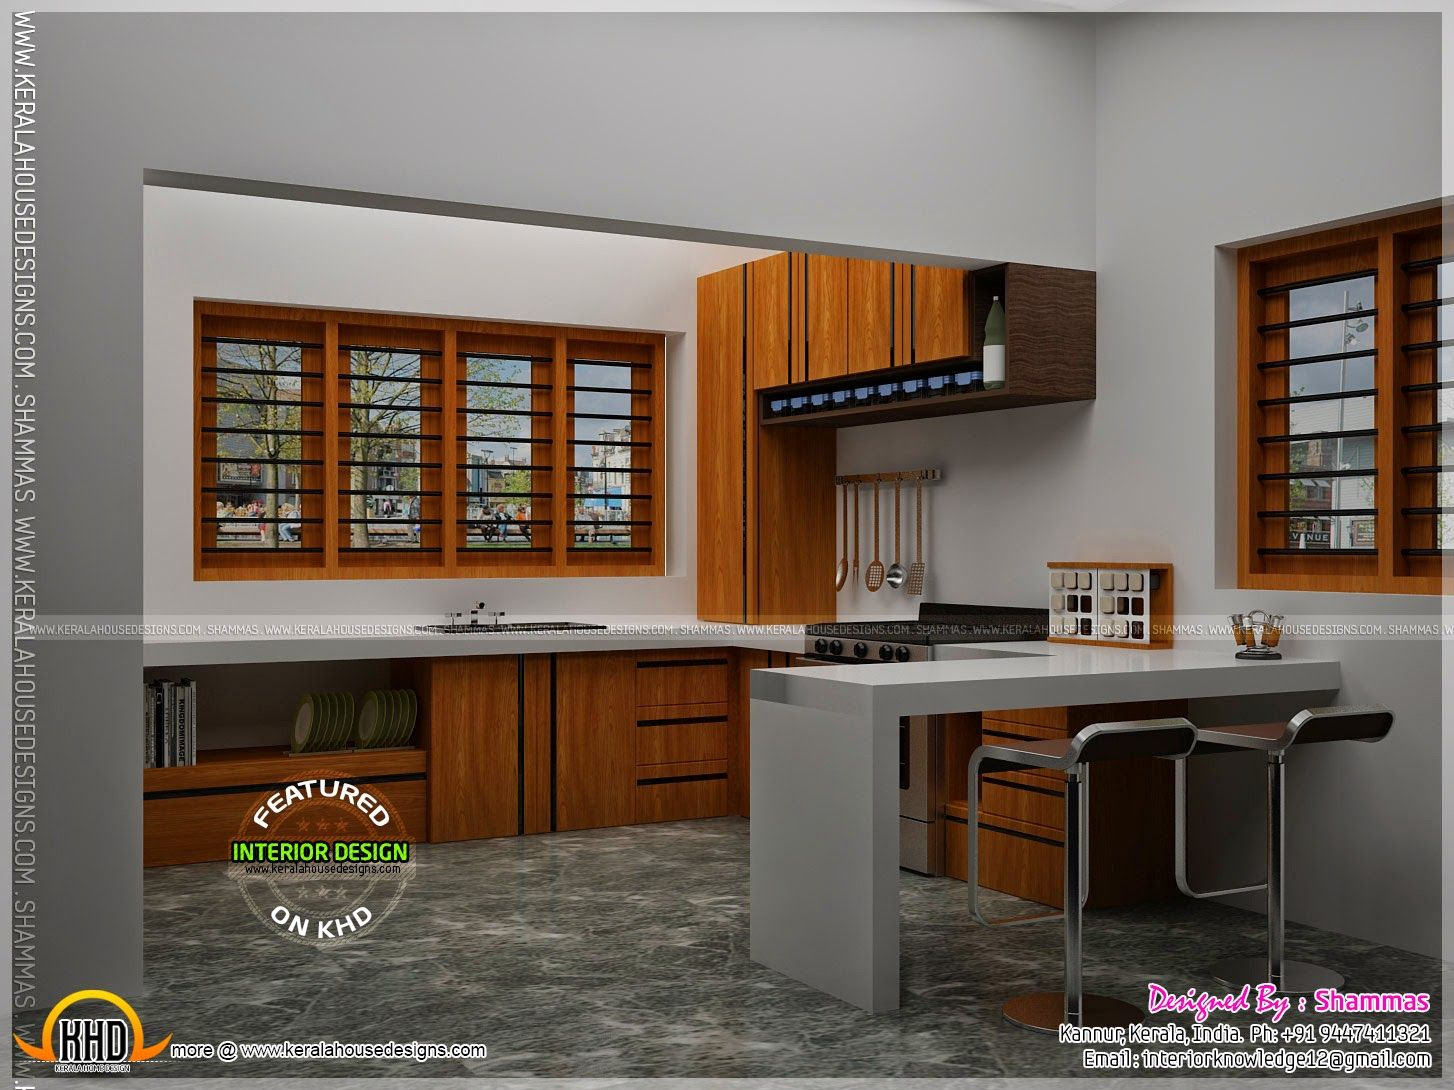 Kitchen Designs Kerala Joy Studio Design Gallery Design Kerala Kitchen Interior Design Joy